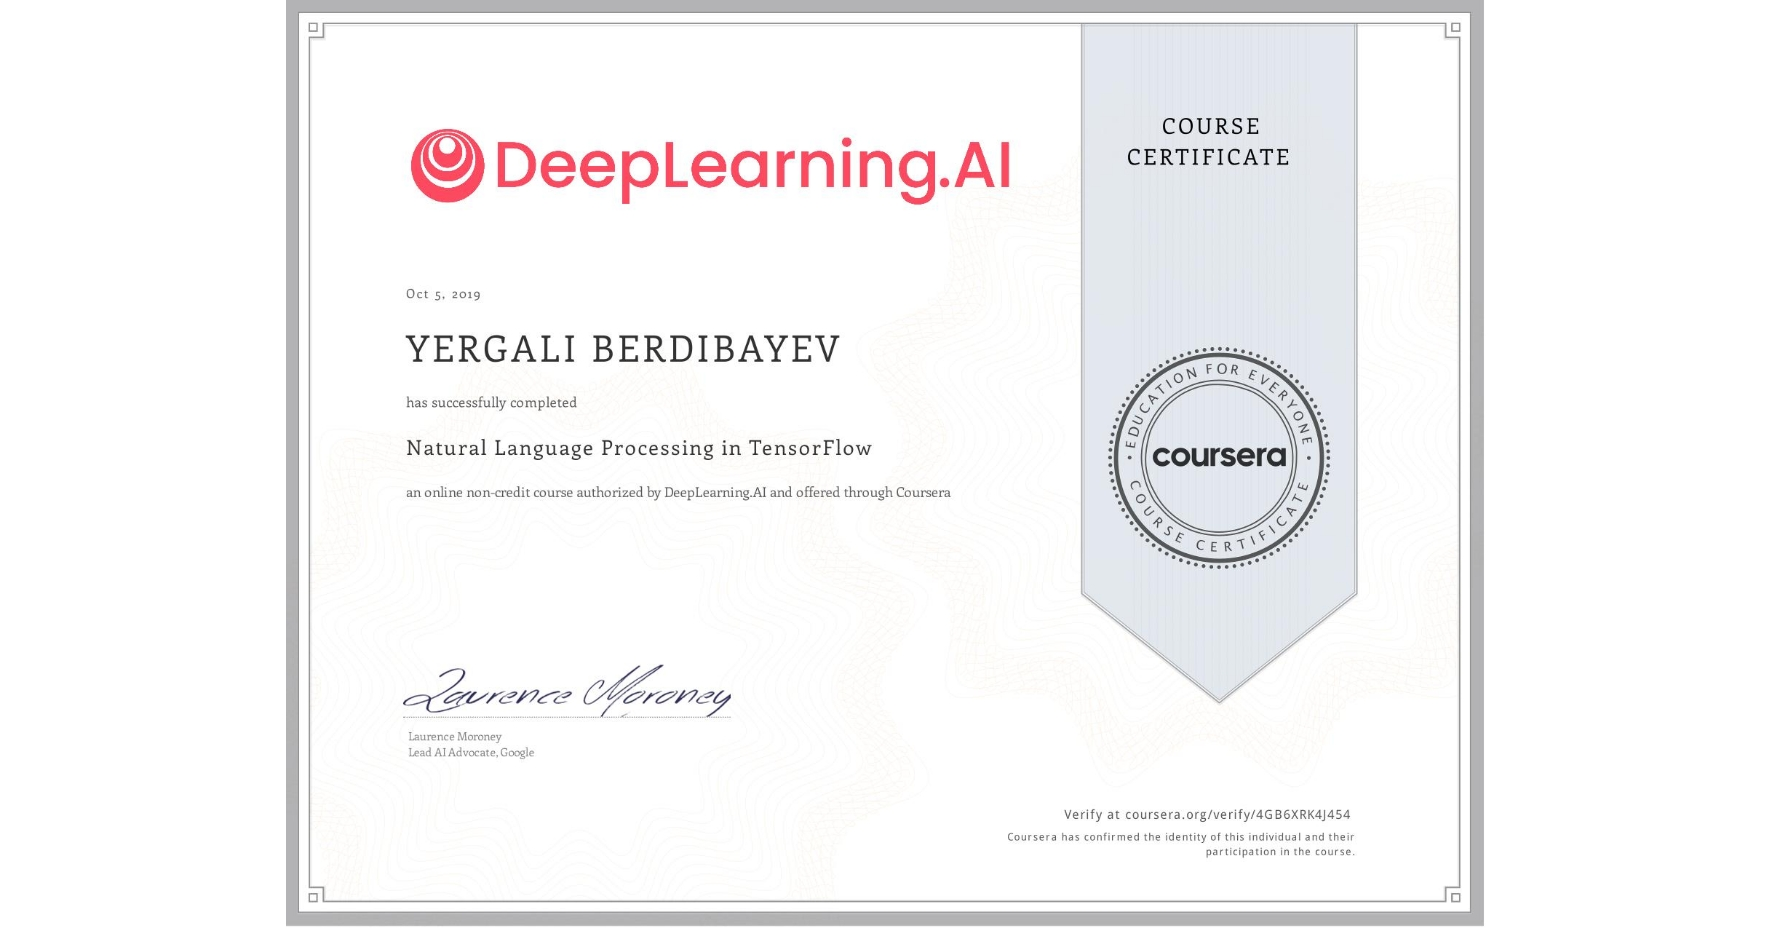 View certificate for Yergali Berdibayev, Natural Language Processing in TensorFlow, an online non-credit course authorized by DeepLearning.AI and offered through Coursera